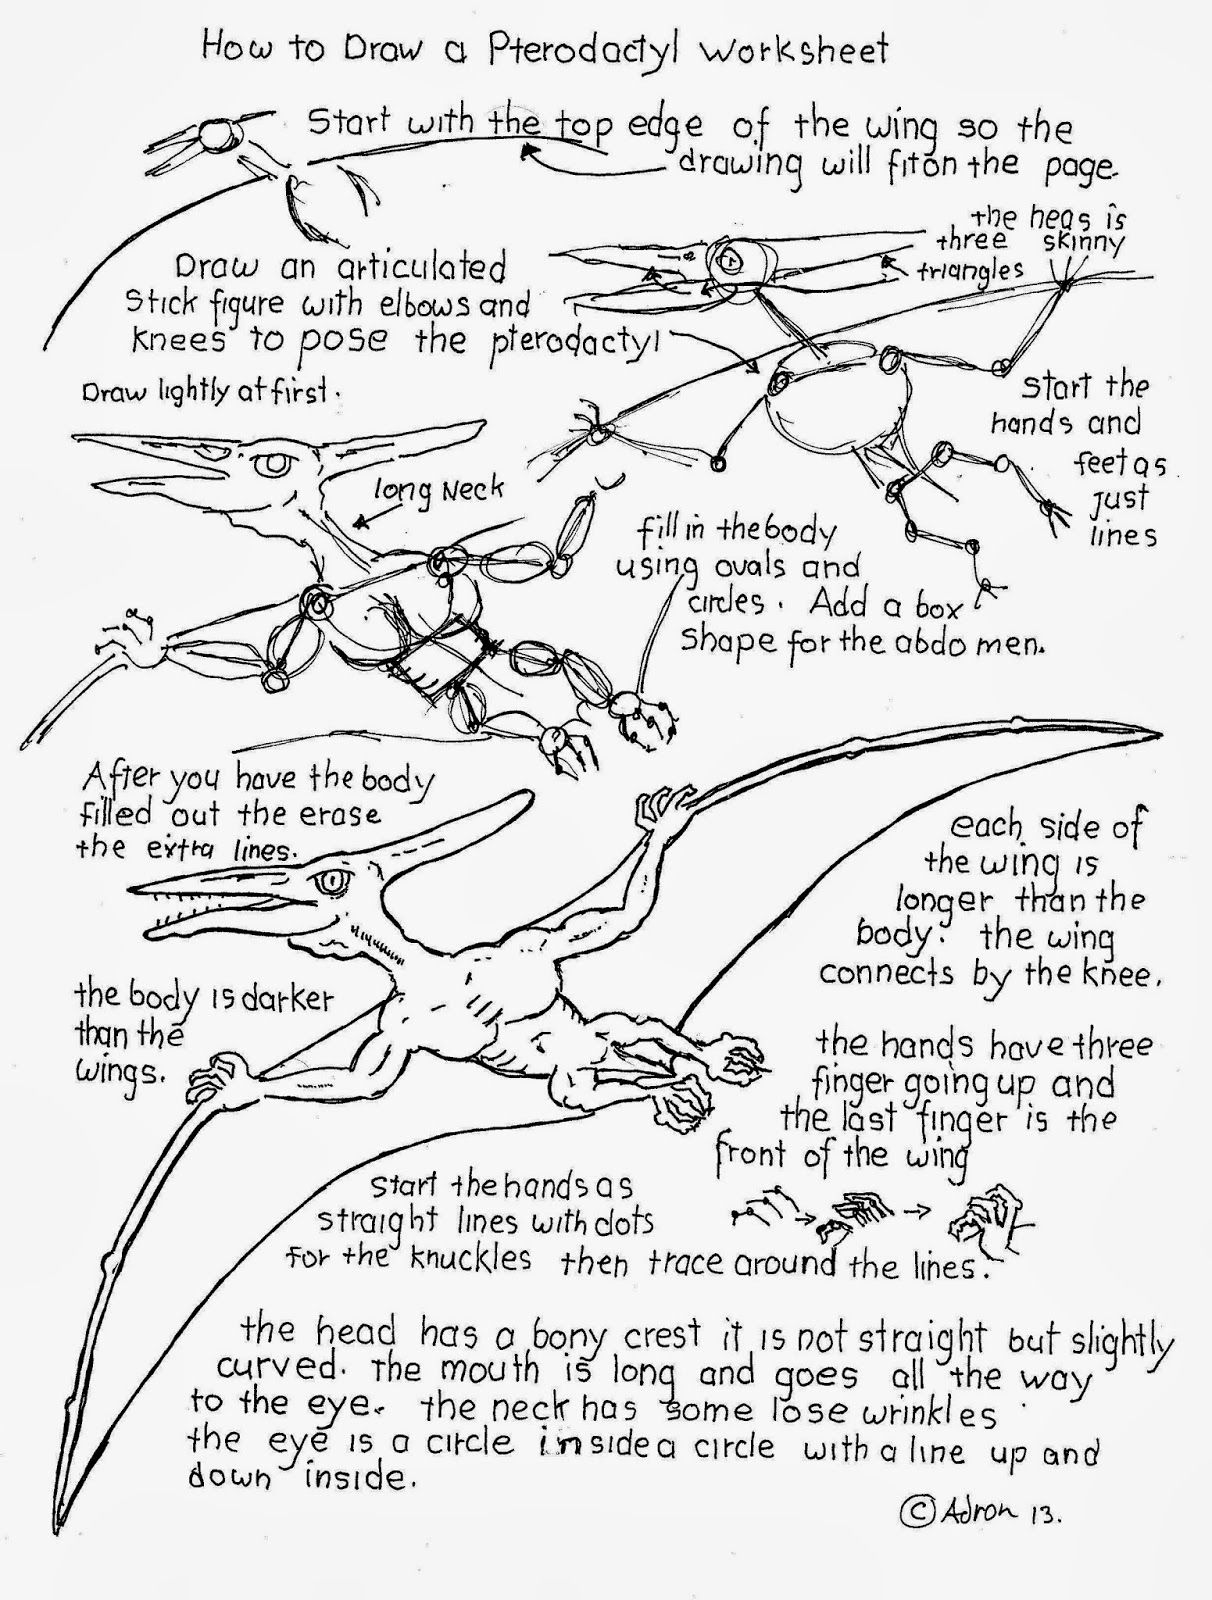 How To Draw A Pterodactyl Worksheet